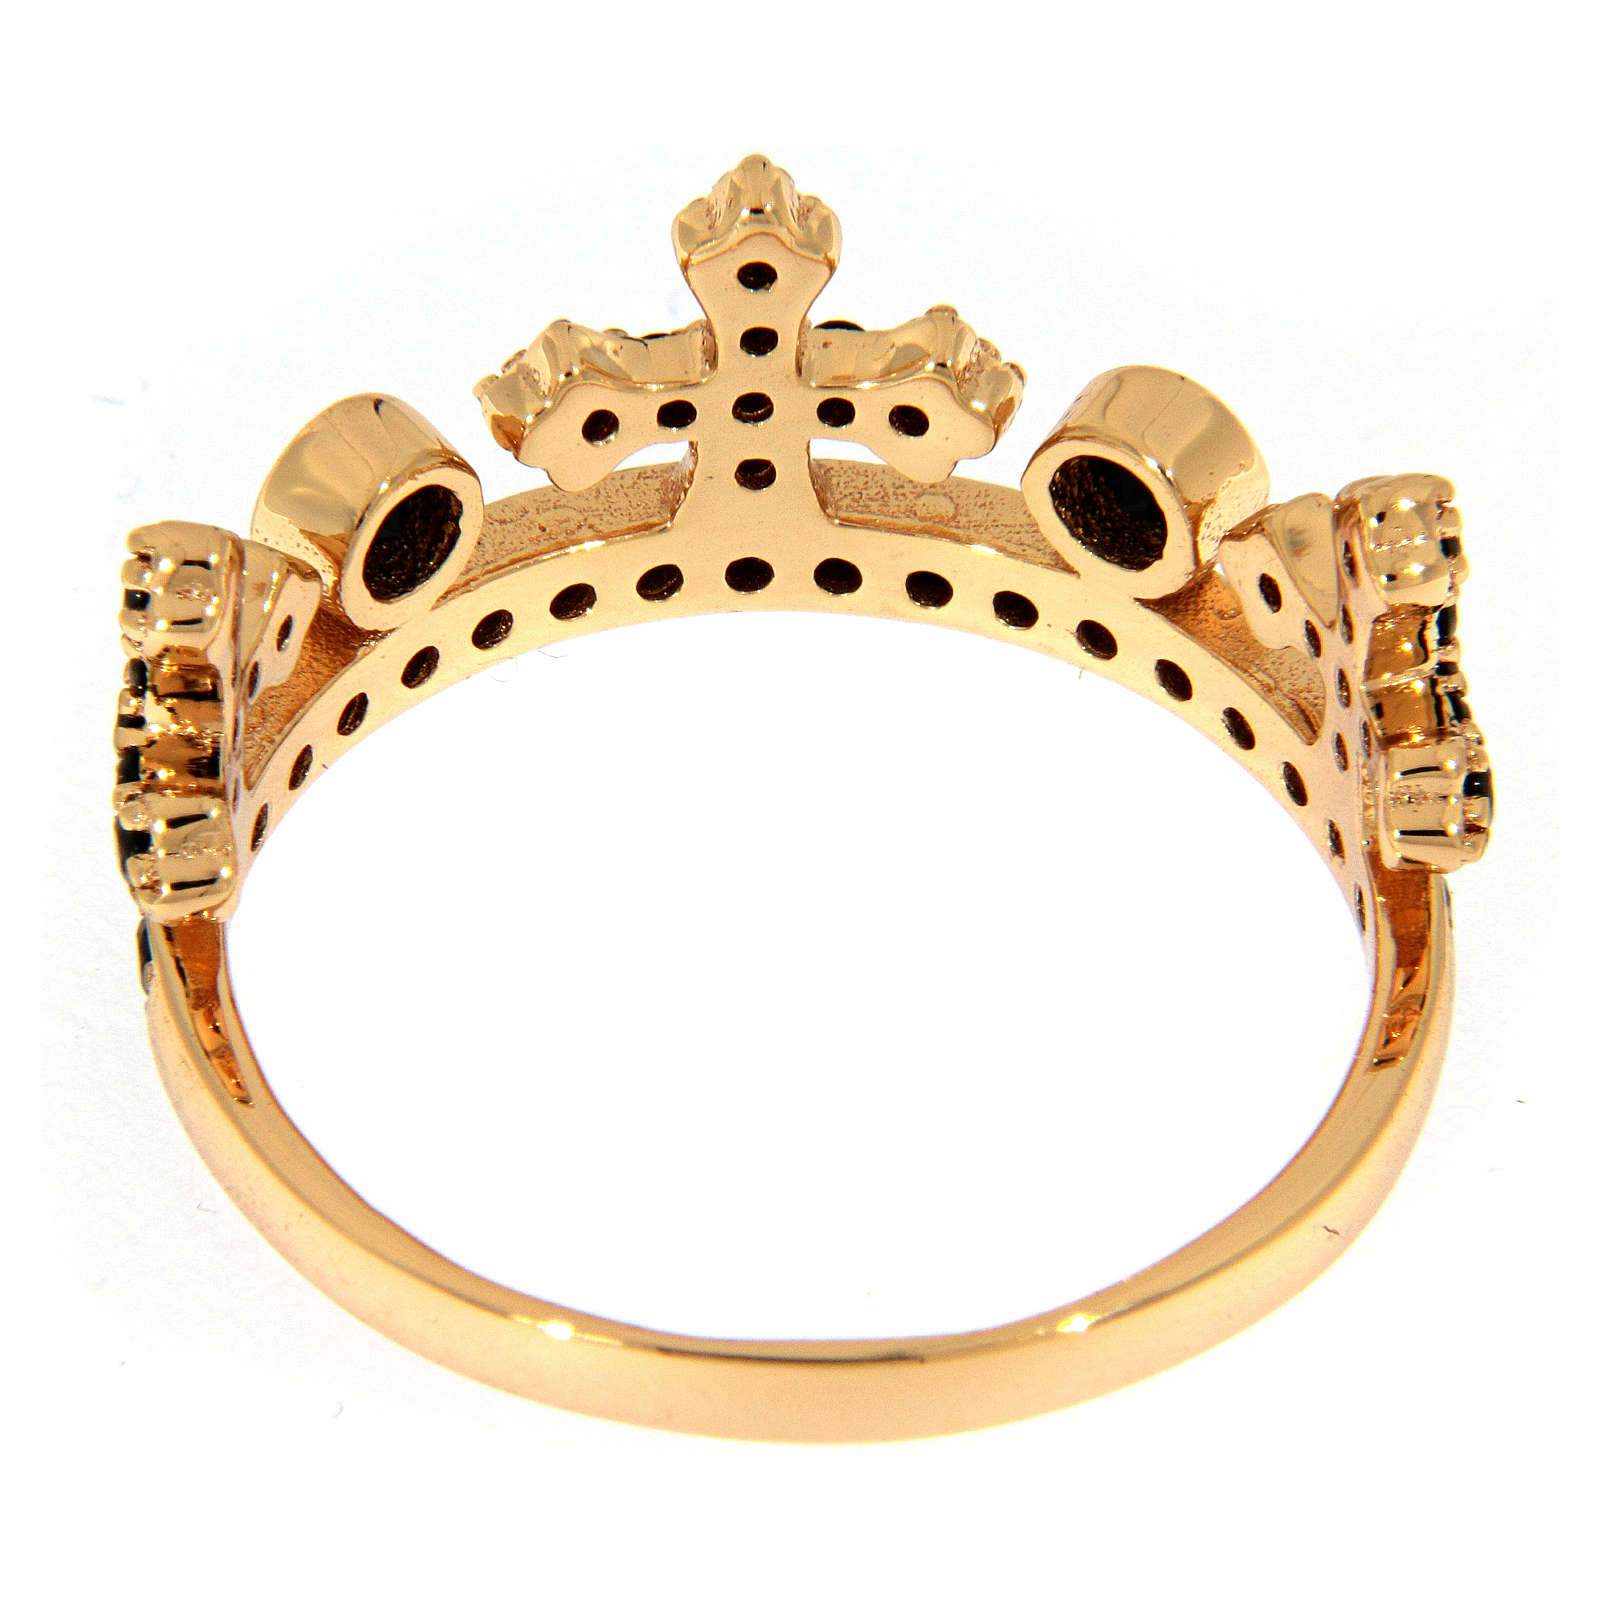 AMEN ring in 925 silver with pink finishing, three-pronged crown and black rhinestones 3